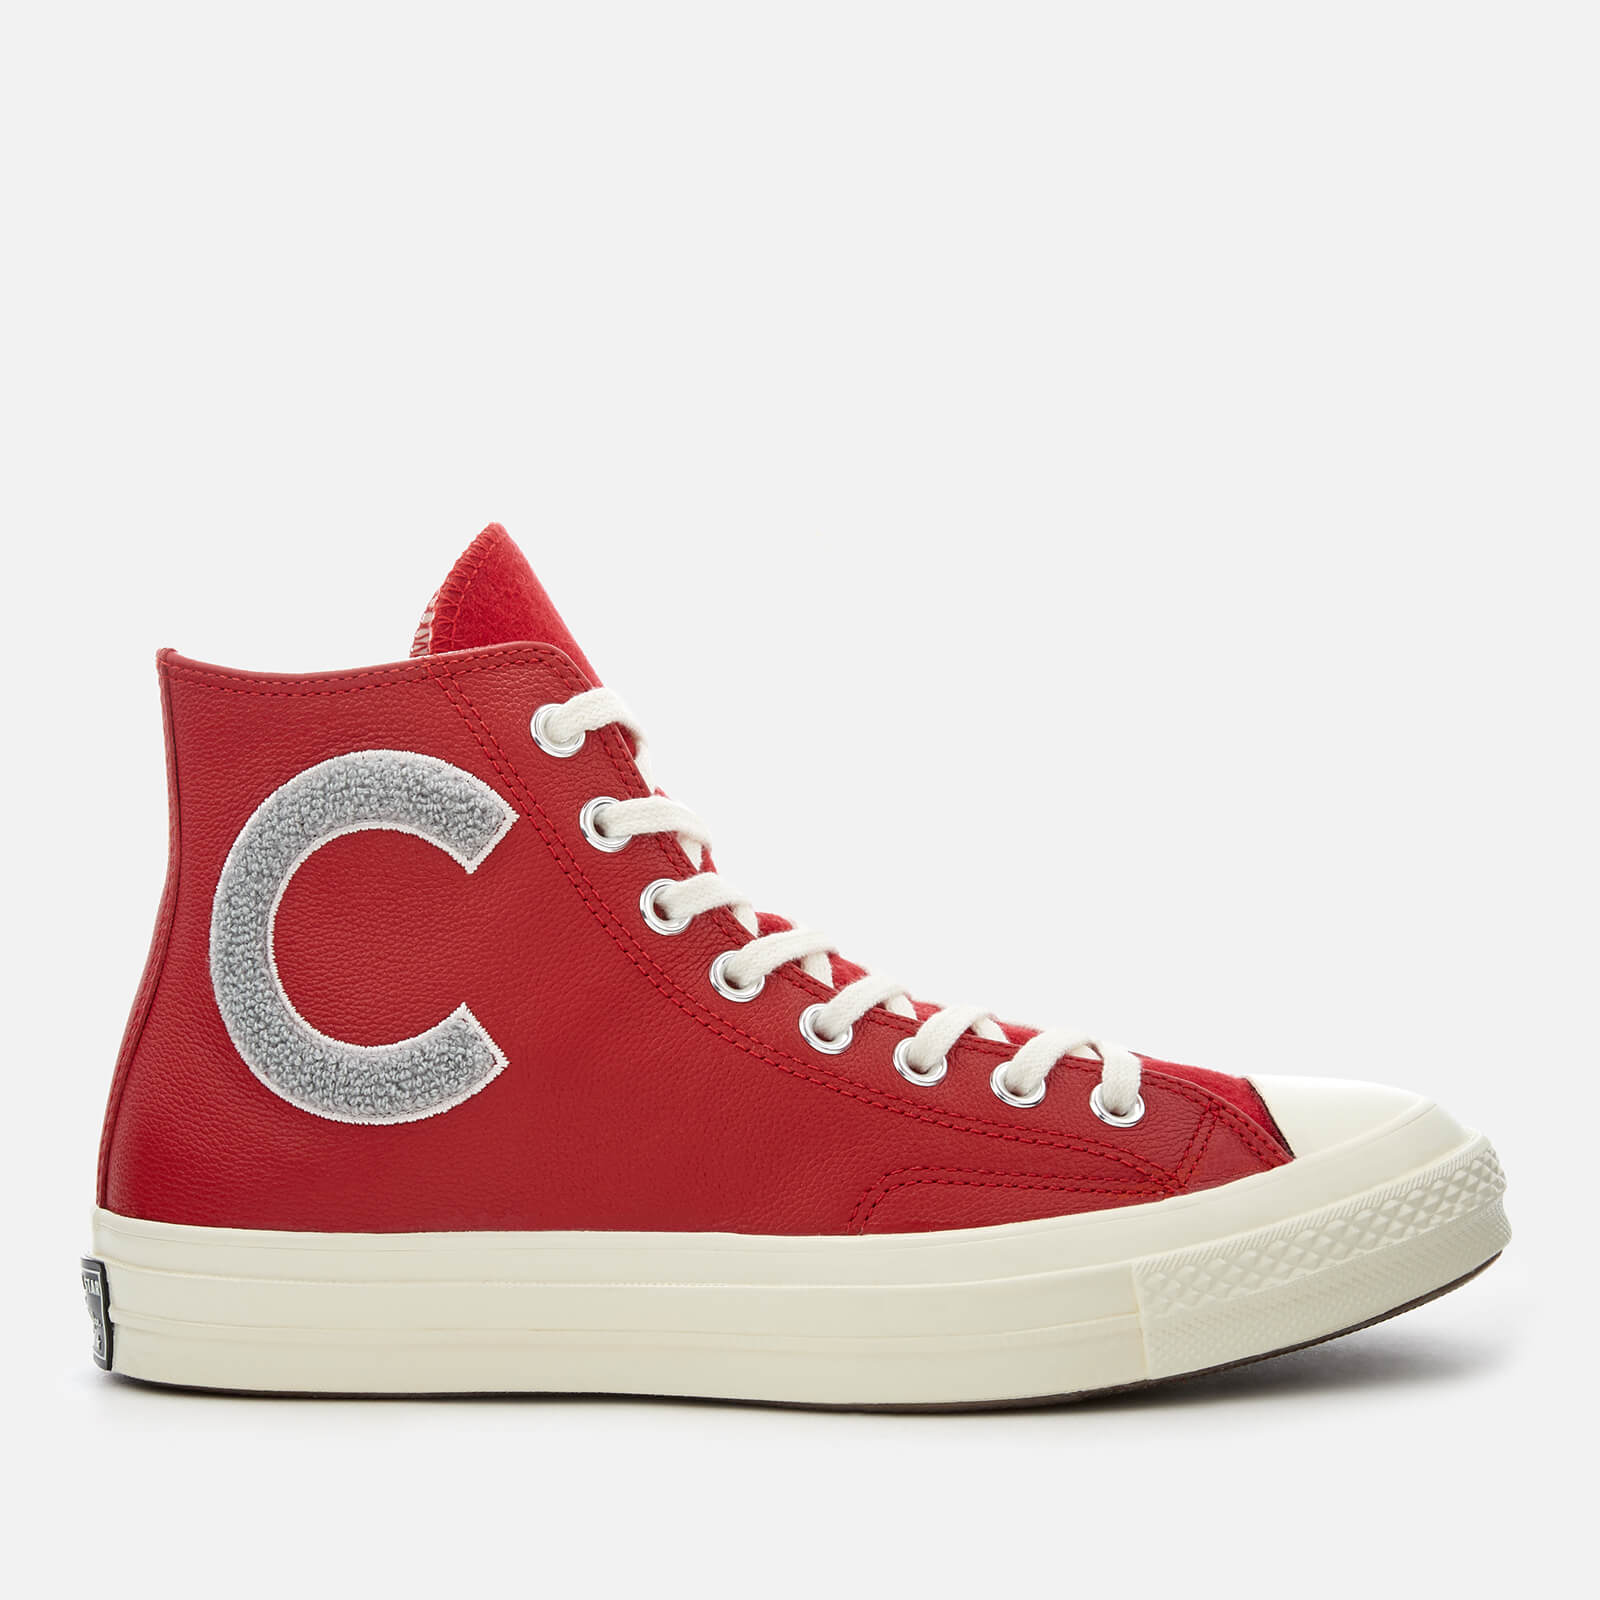 5b9b9267f5fd Converse Men s Chuck Taylor All Star 70 Hi-Top Trainers - Enamel Red Wolf  Grey Egret - Free UK Delivery over £50